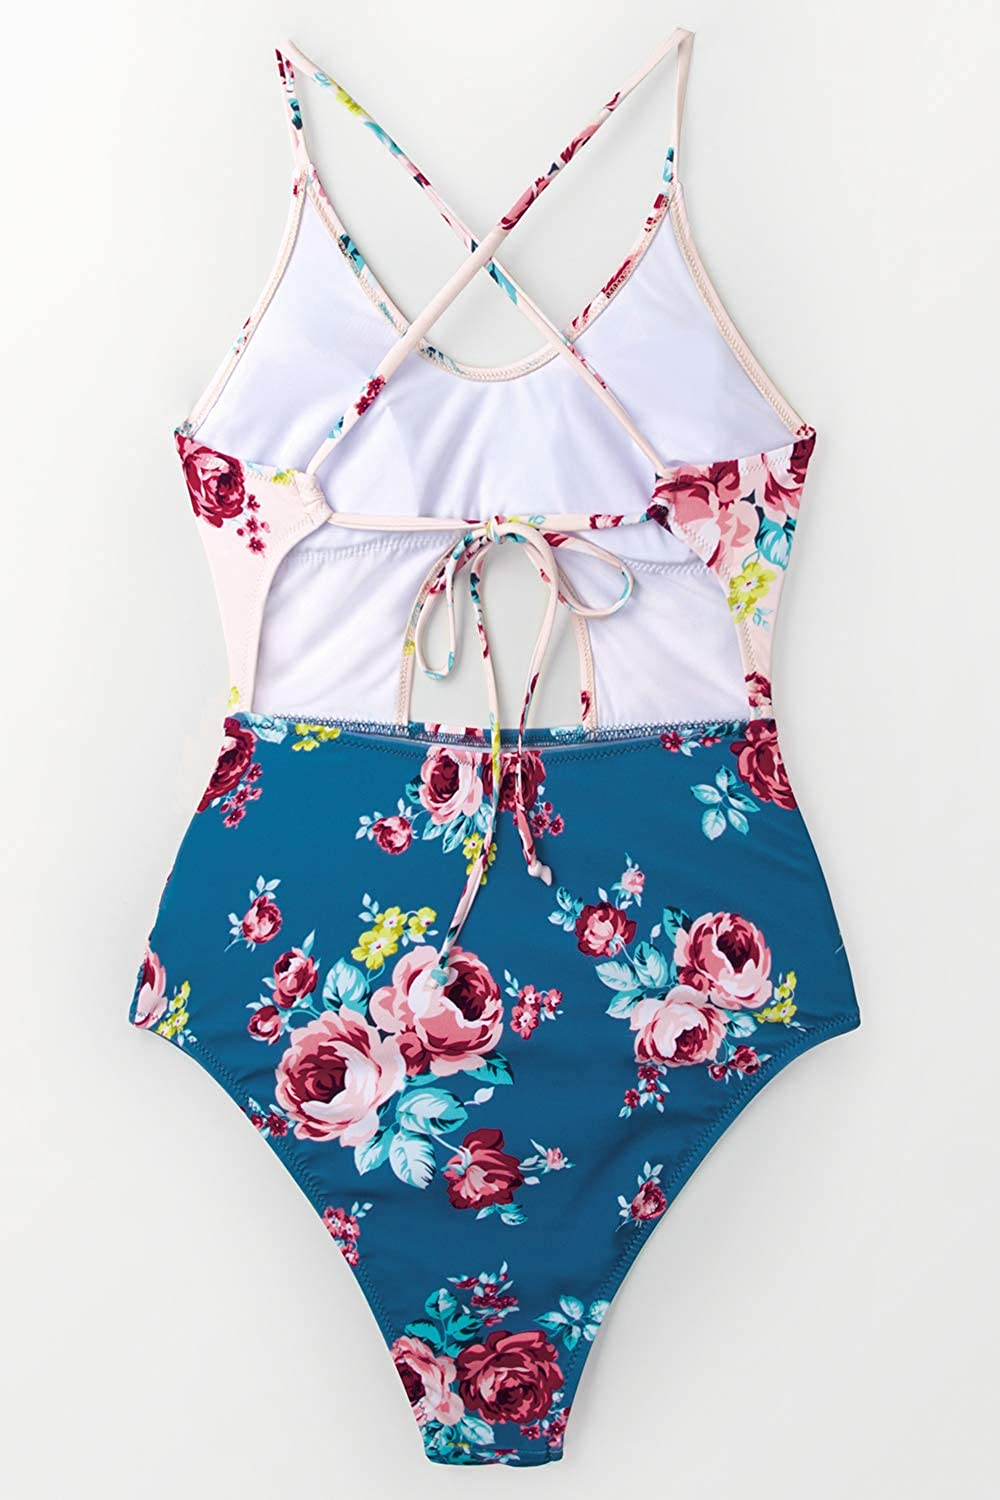 CUPSHE Womens Pink Blue Floral Cutout One Piece Swimsuit